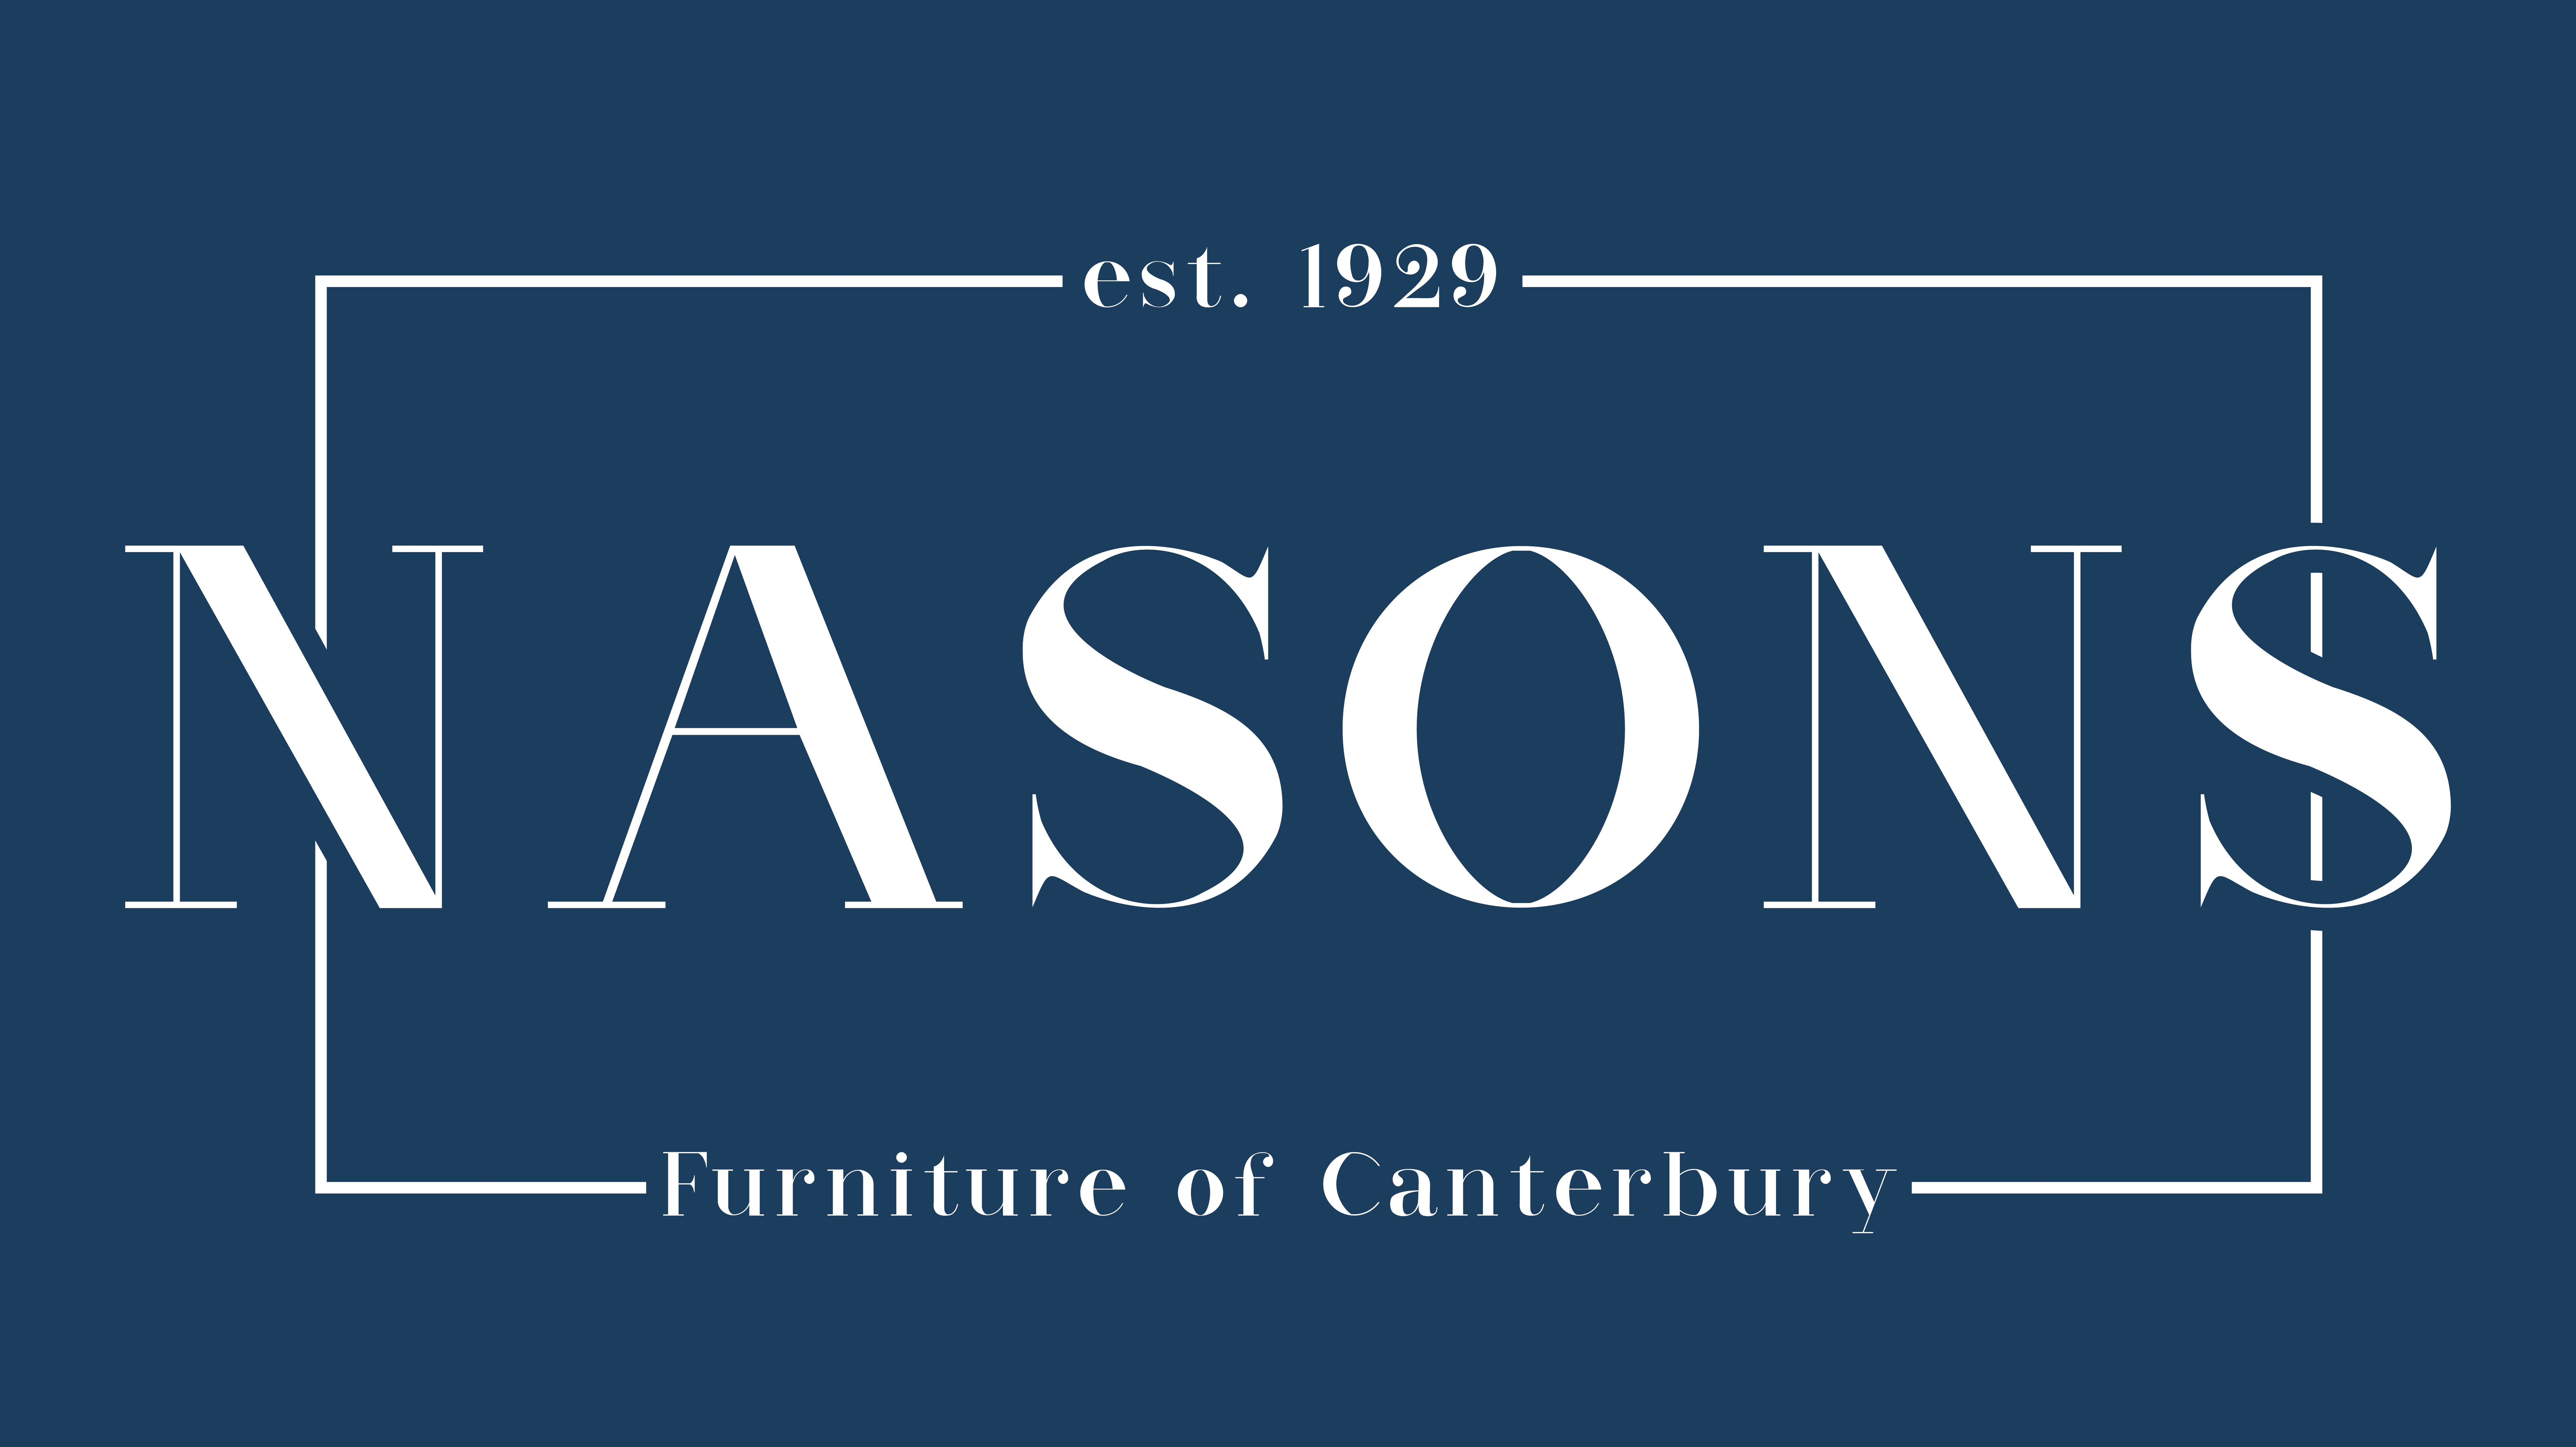 Nasons Furniture of Canterbury